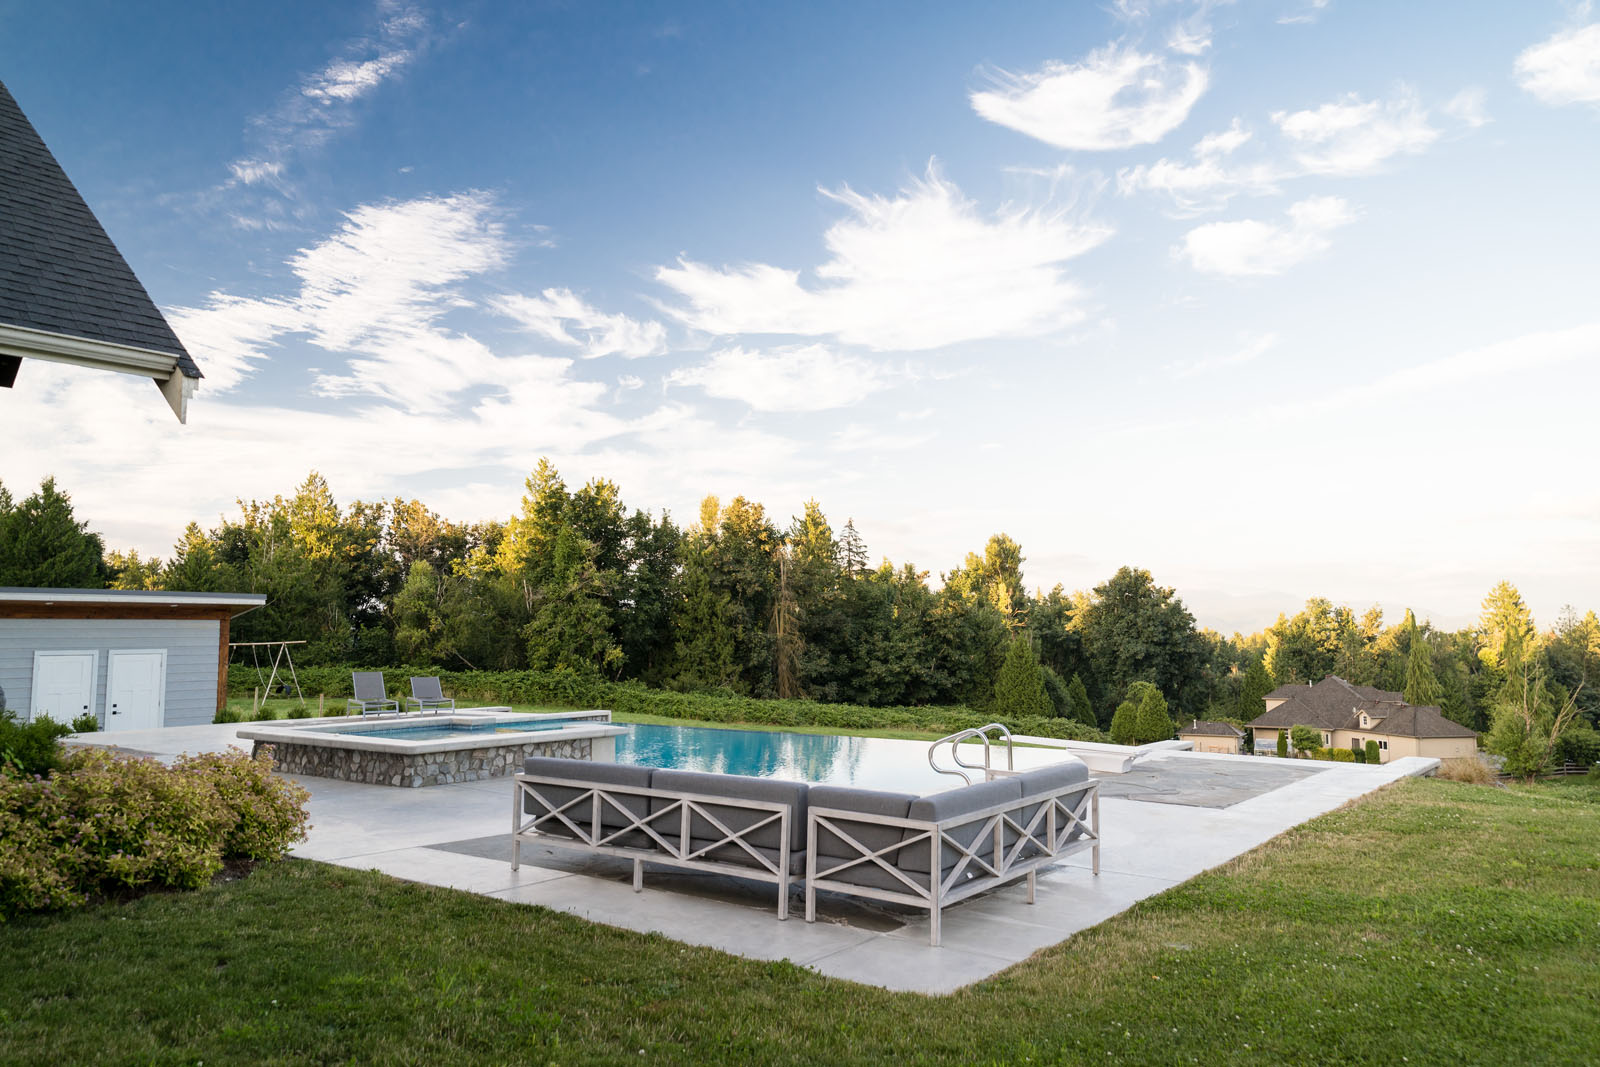 Outdoor-concrete-swimming-pool-azuro-REI037